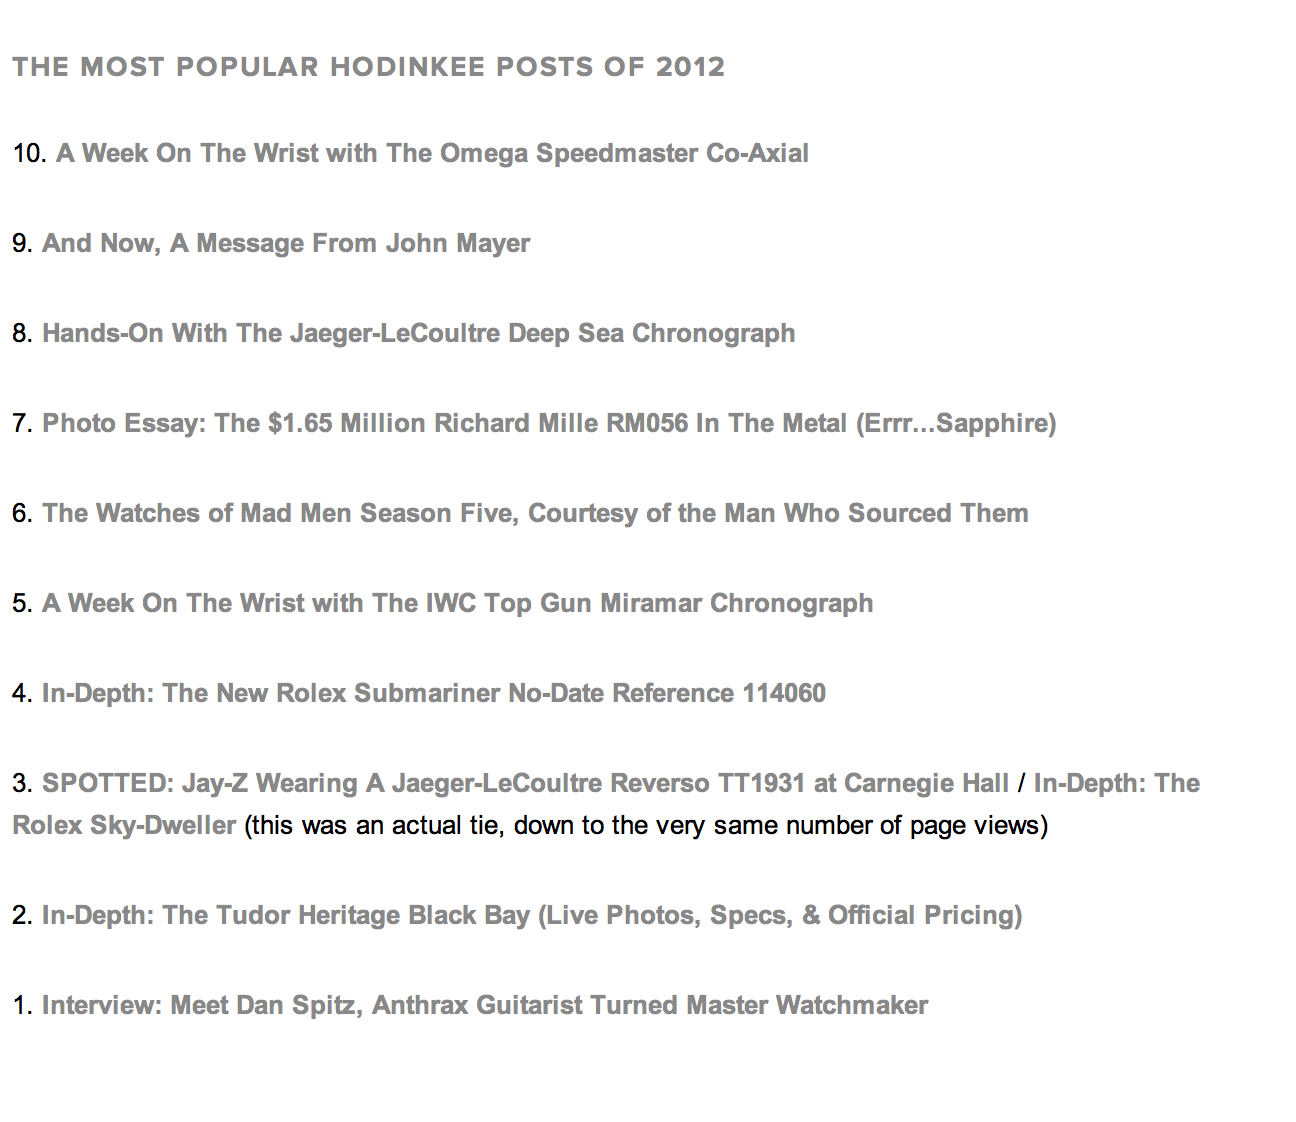 Top 10 HODINKEE posts 2012